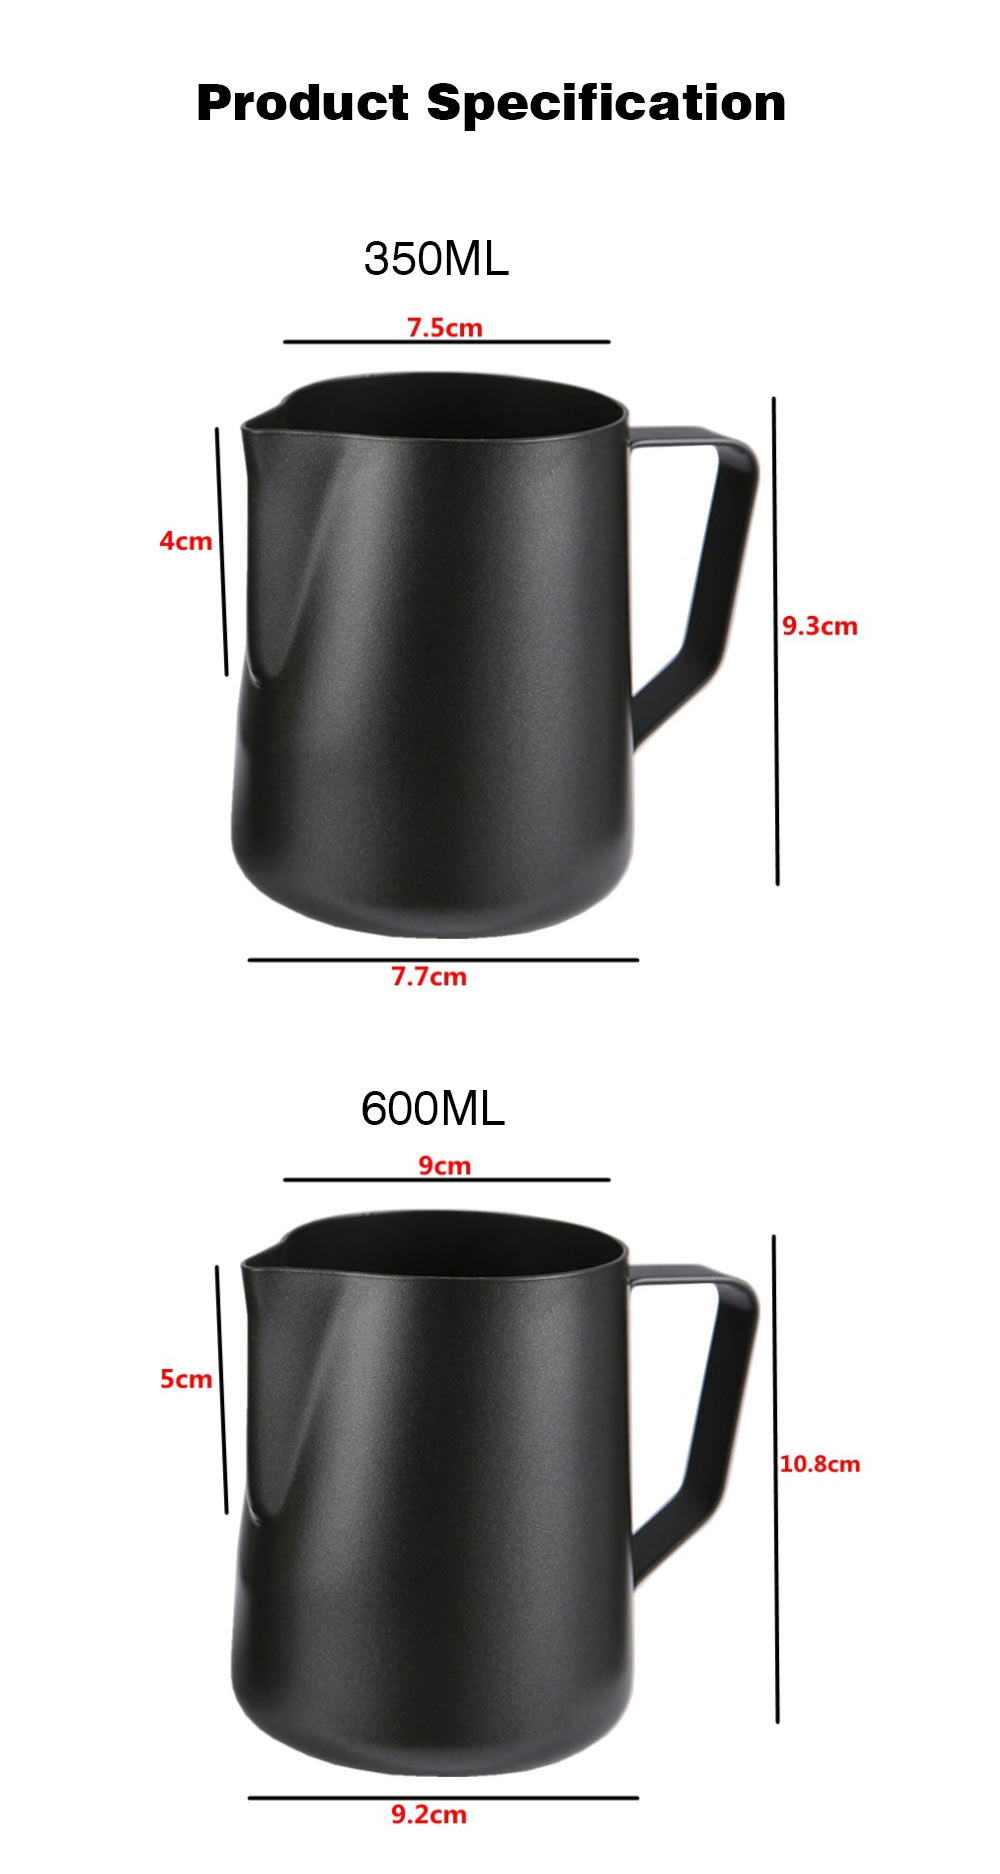 Teflon-coated Garland Cup for Milk Stainless Steel Cup for Milk Non-Stick Milk Mug with 350ml/600ml Coffee Cup 8